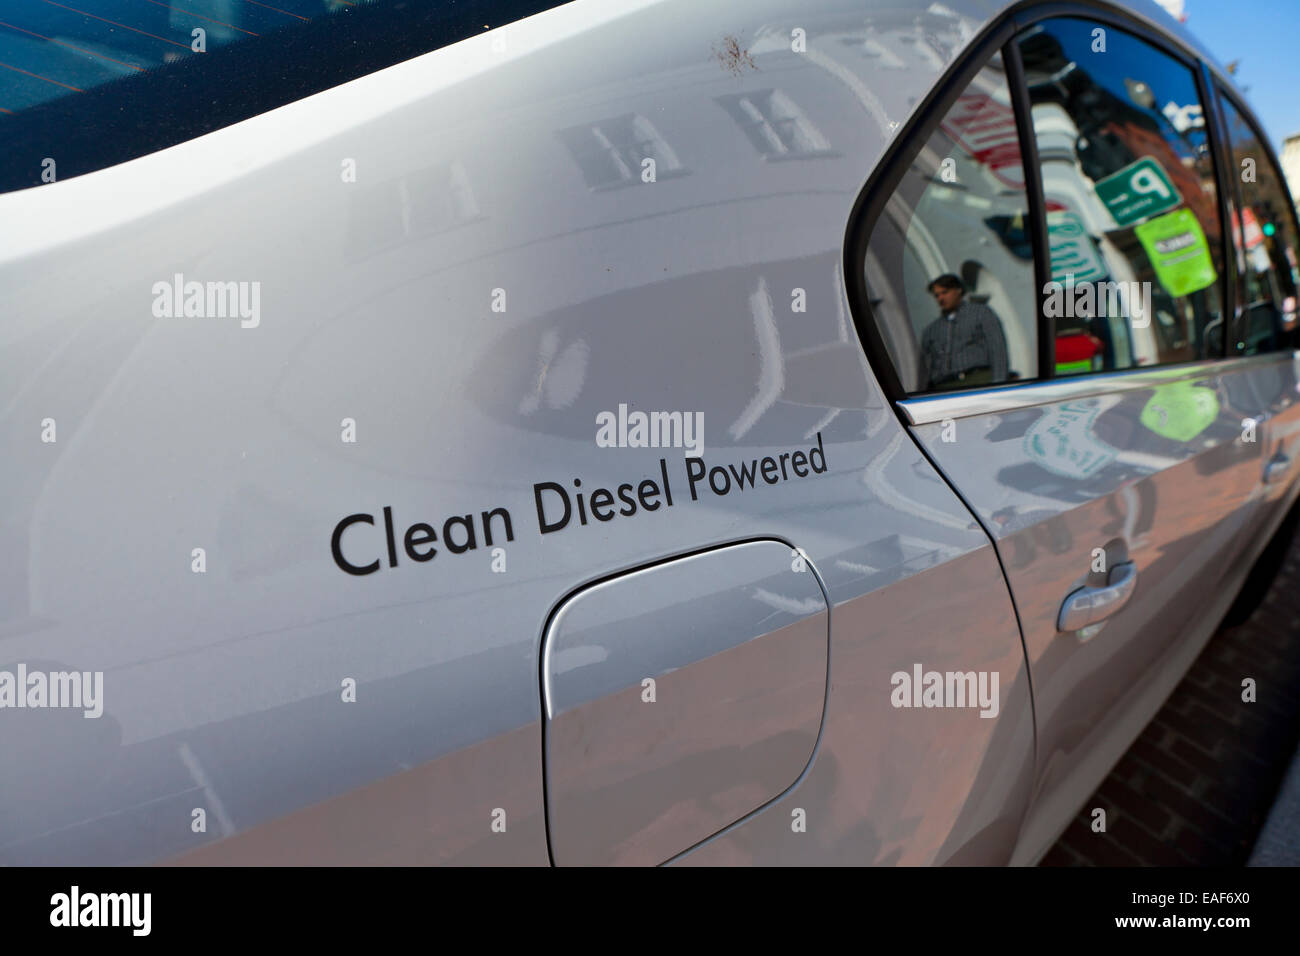 Clean Diesel Powered sign on car - USA - Stock Image